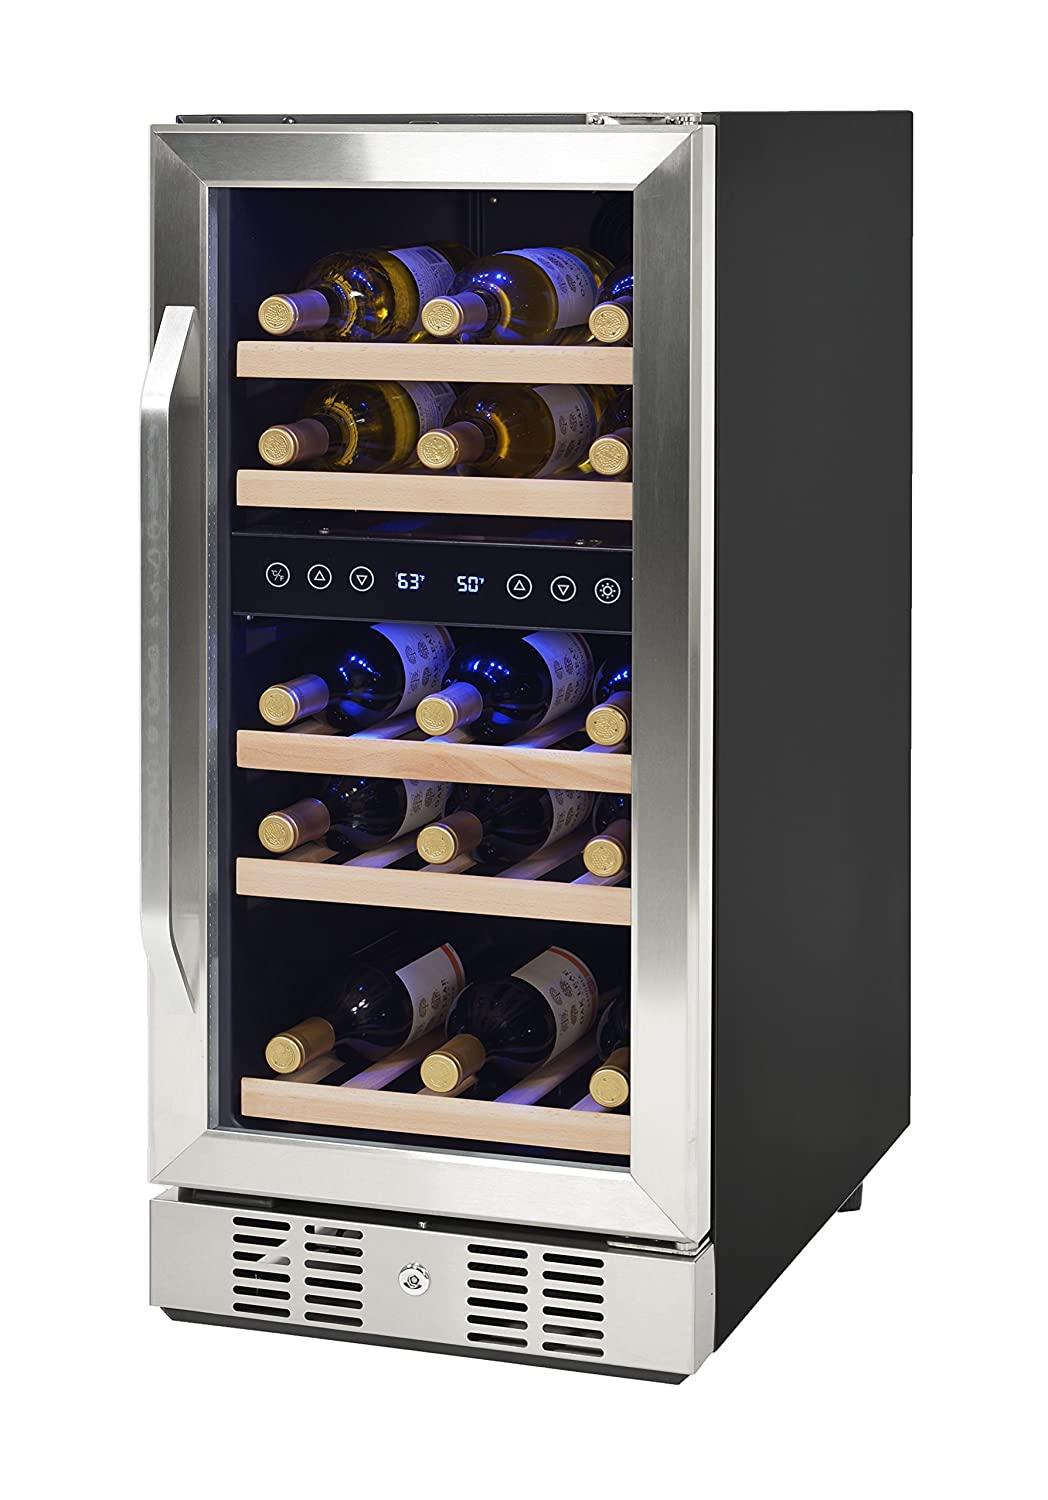 NewAir Dual Zone Built In Wine Cooler and Refrigerator 29 Bottle Capacity Fridge with Double Layer Tempered Glass Door AWR 290DB